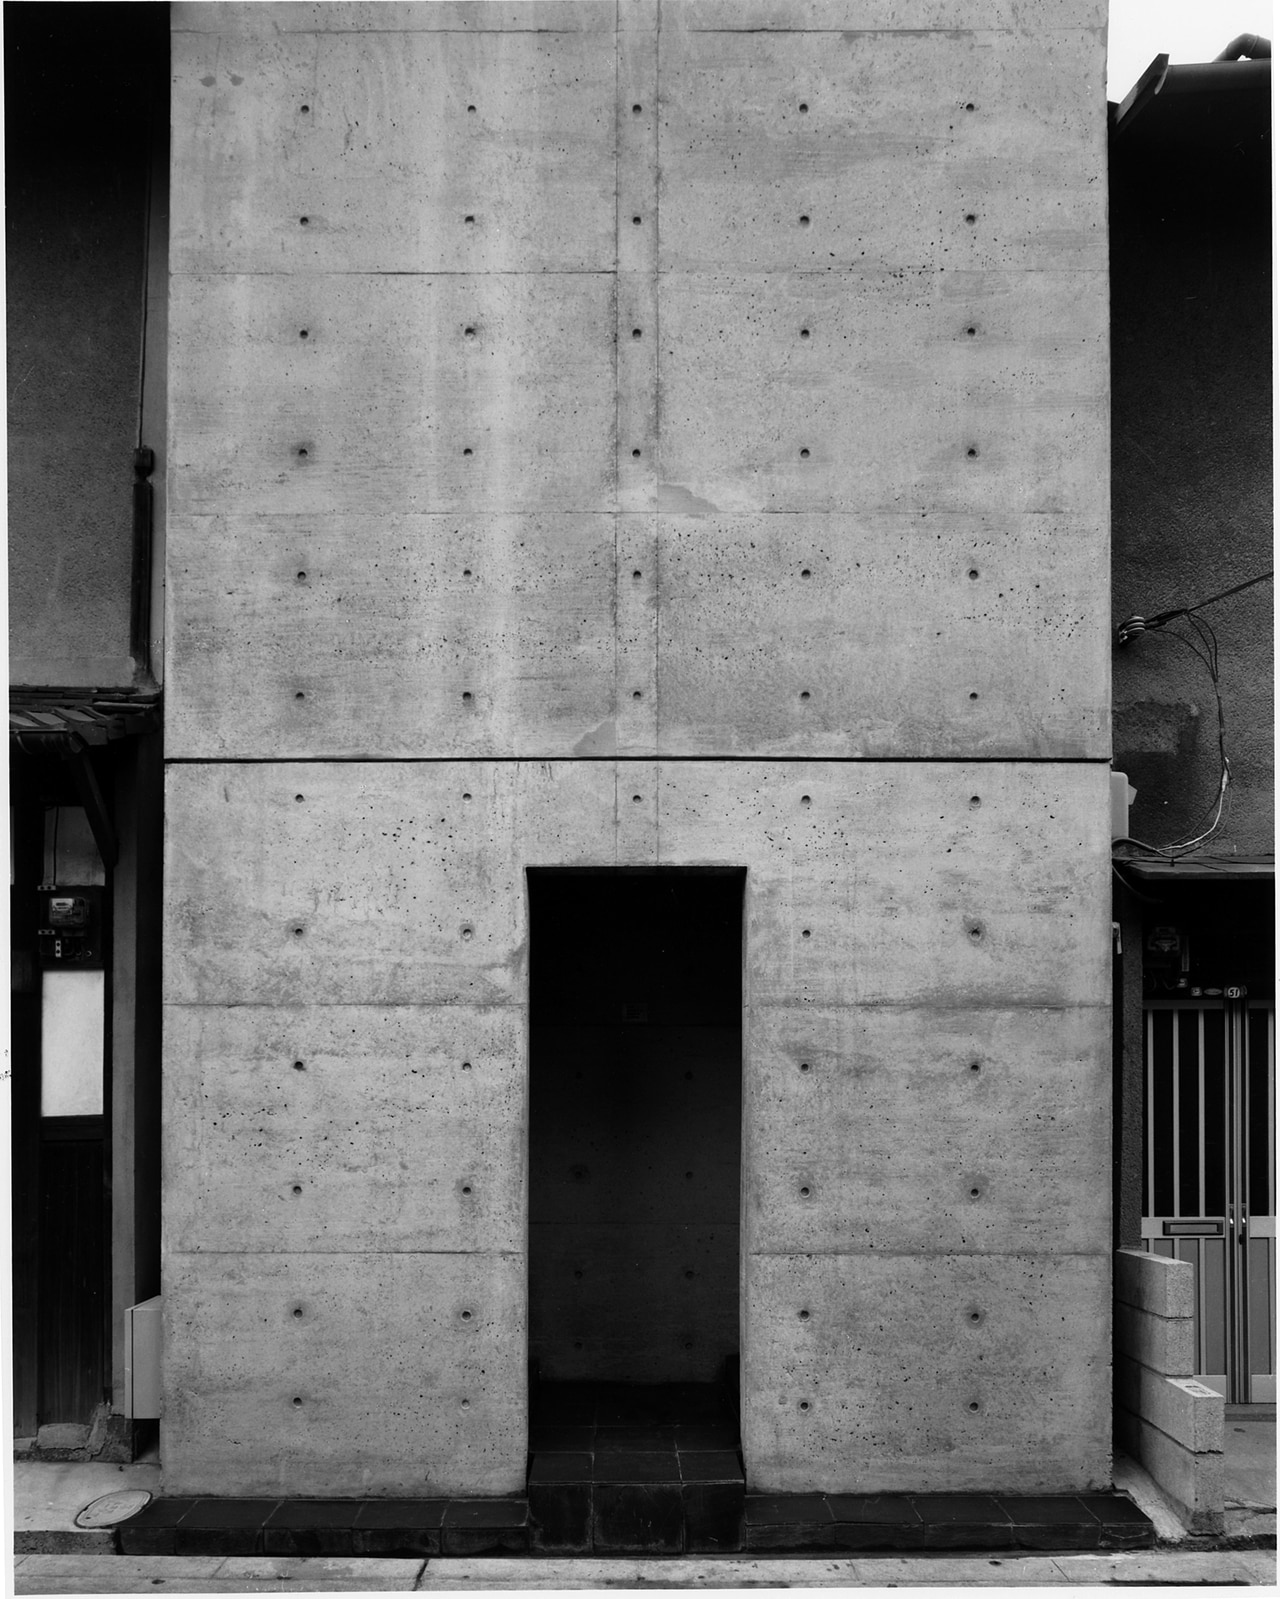 Tadao Ando: the challenge of an architectural guerrilla at